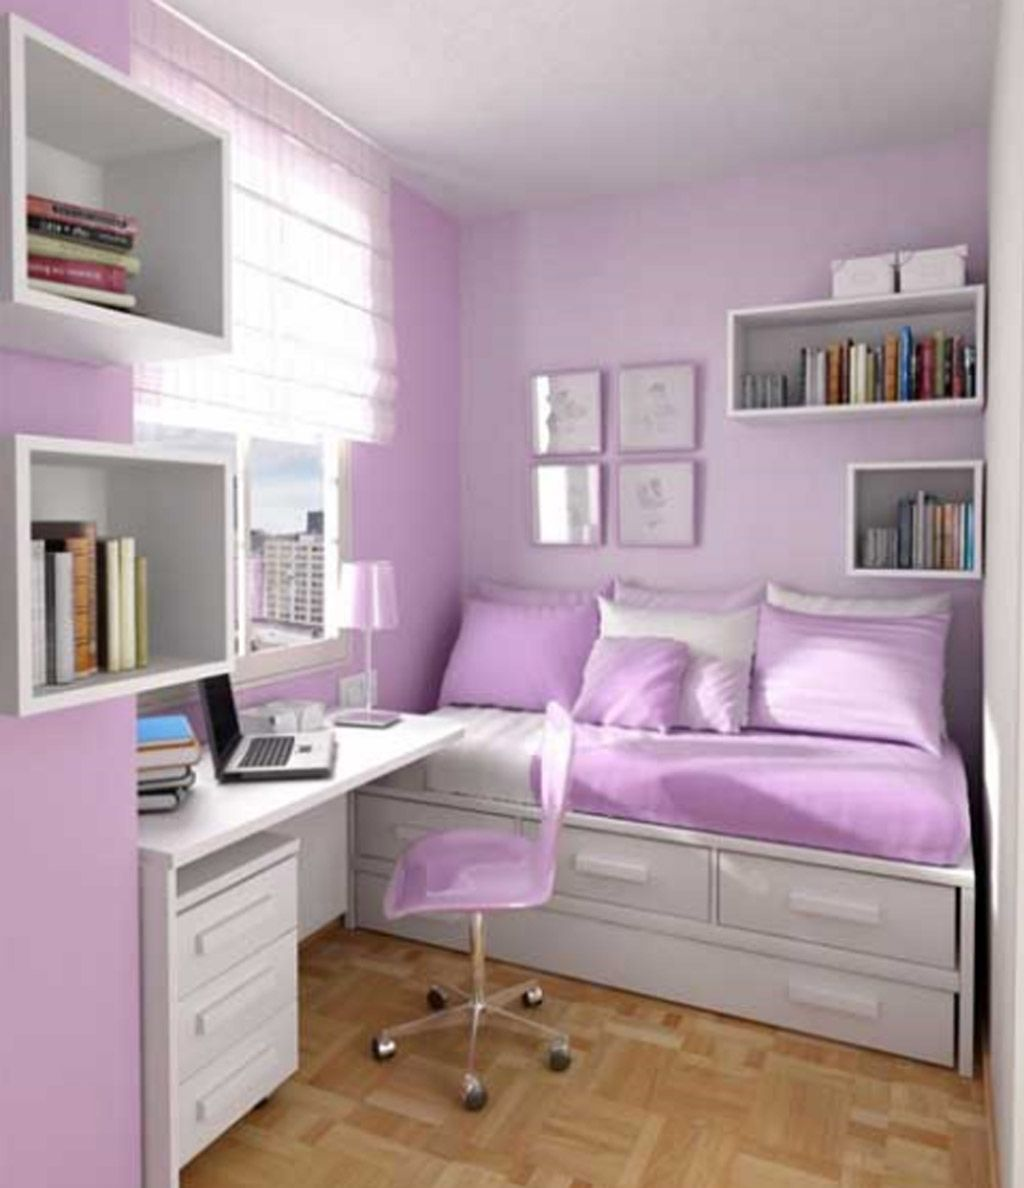 pictures of girls rooms decorating ideas room decorating ideas for teenage girls 10 purple - Teenage Girl Room Ideas Designs